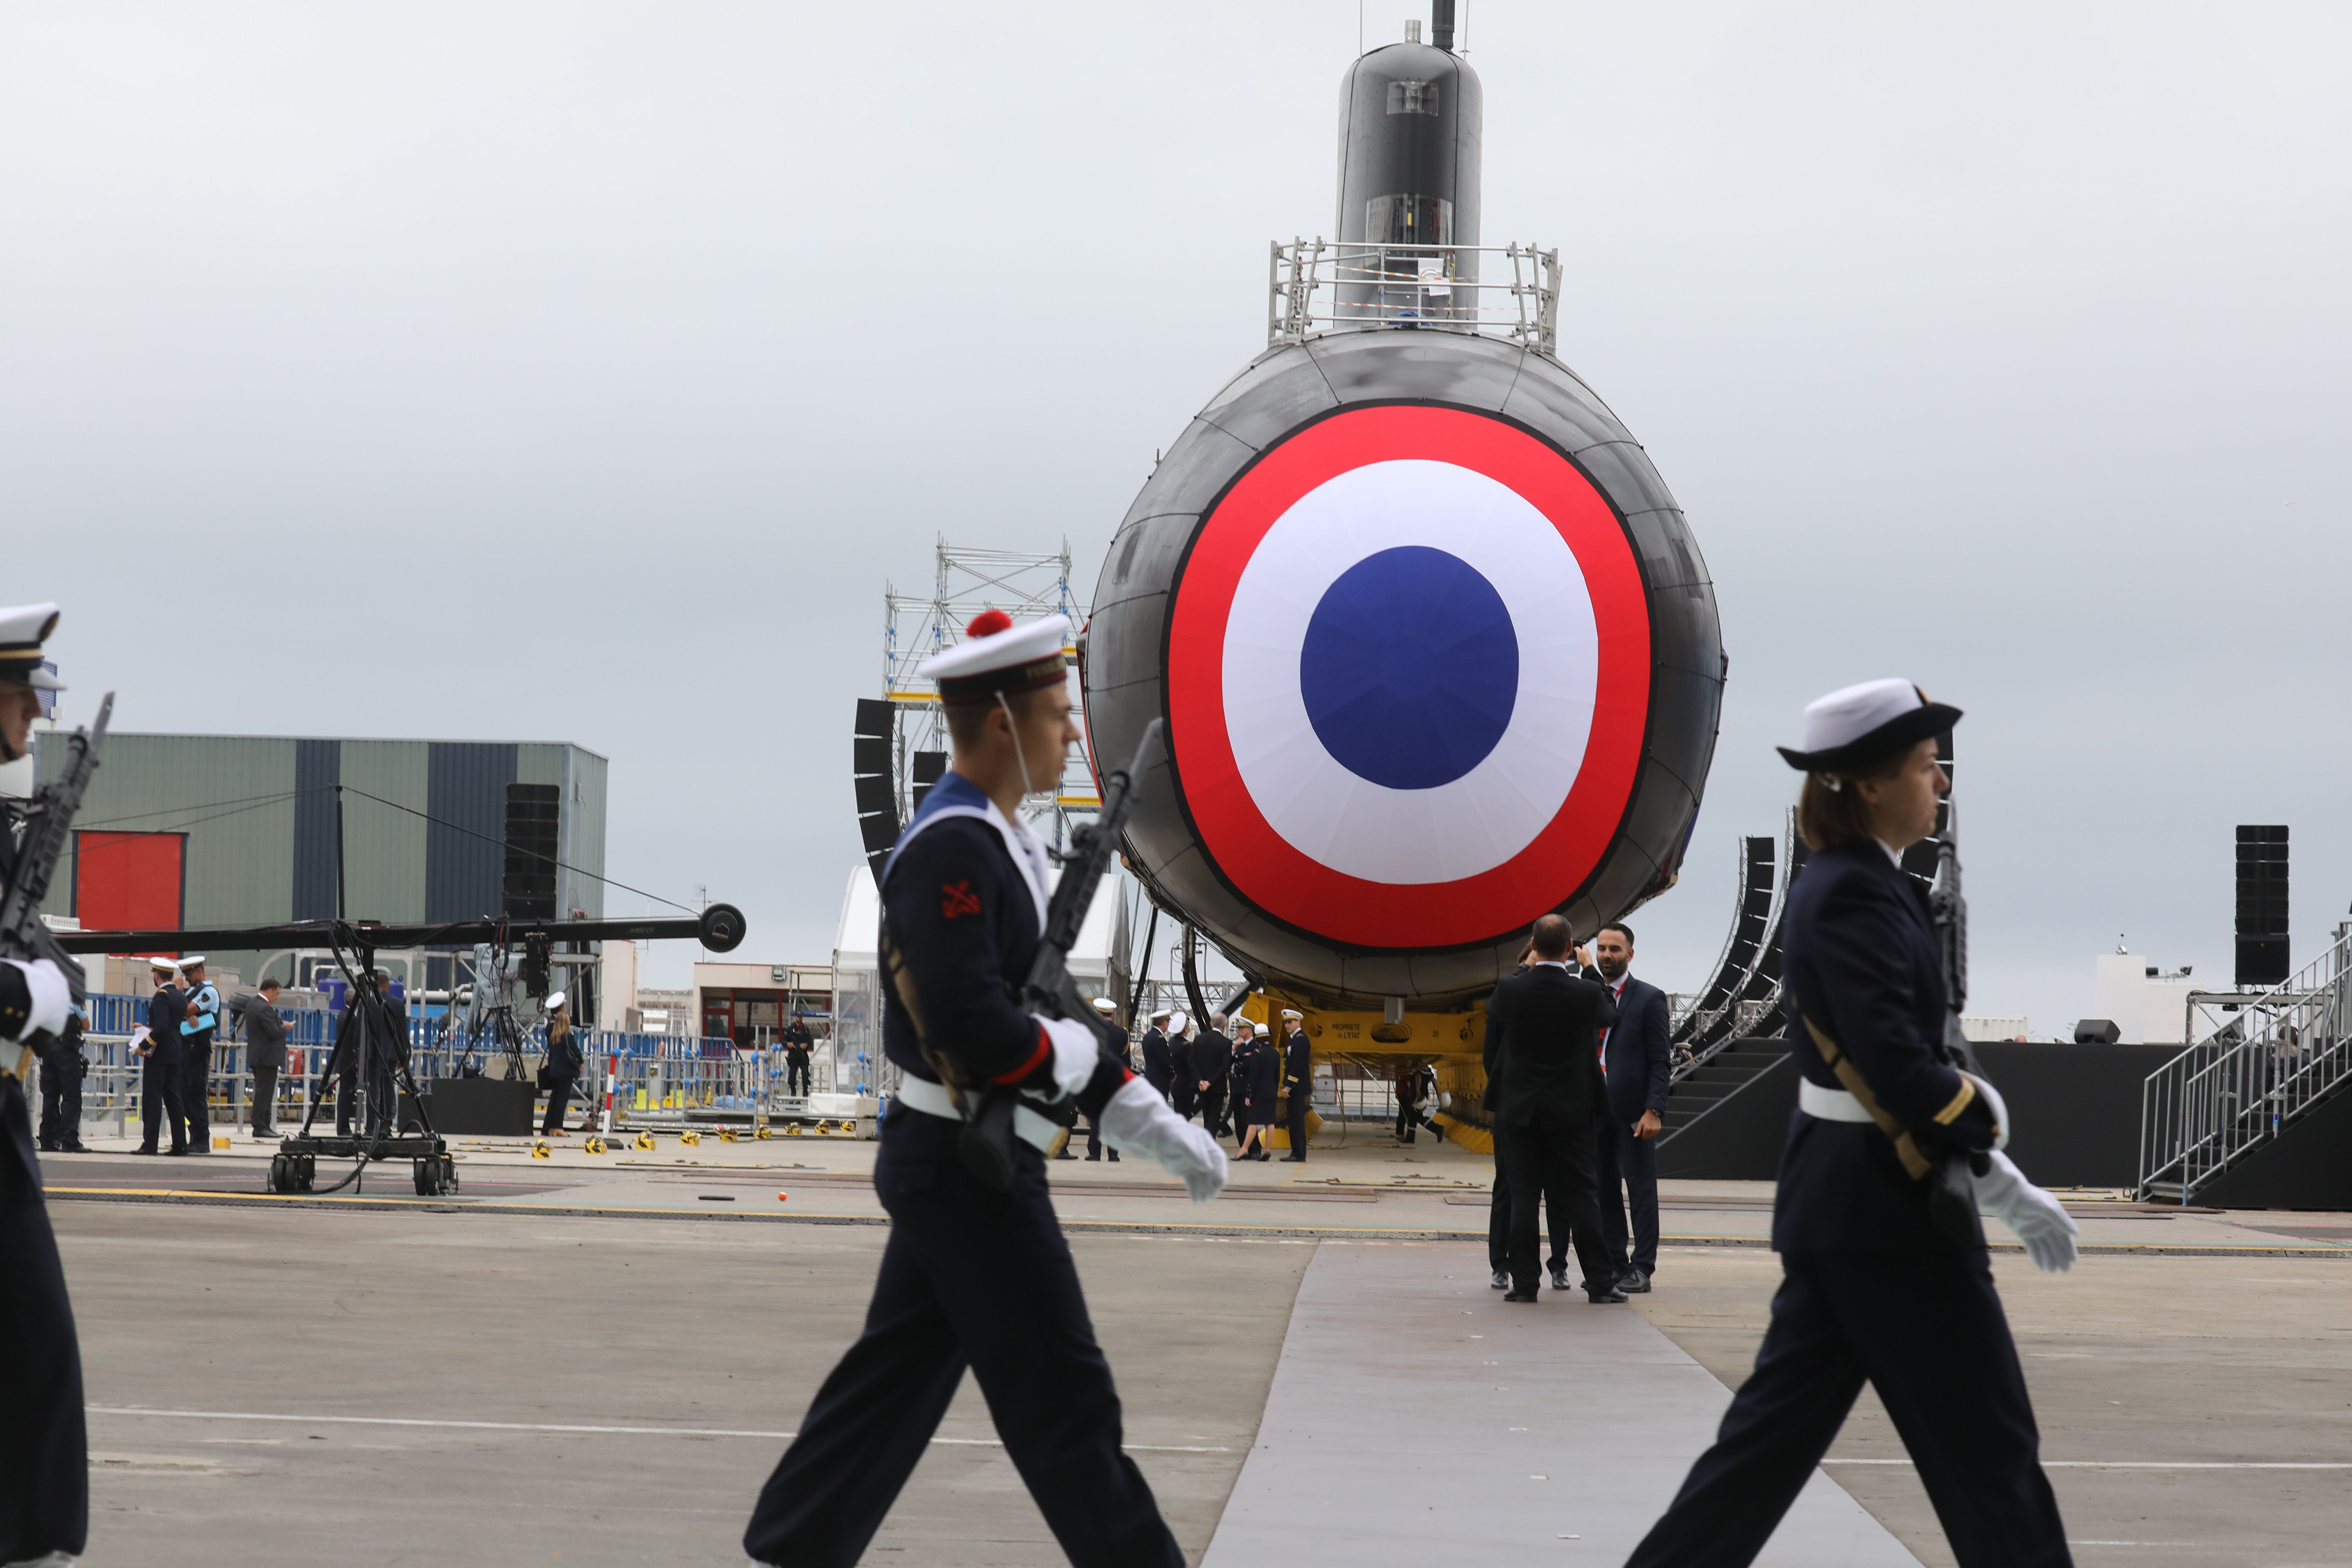 French National Marine members parade in front of the nuclear submarine Suffren in the Naval Group shipyard in Cherbourg, northwestern France, on July 12, 2019. (Ludovic Marin/AFP via Getty Images)